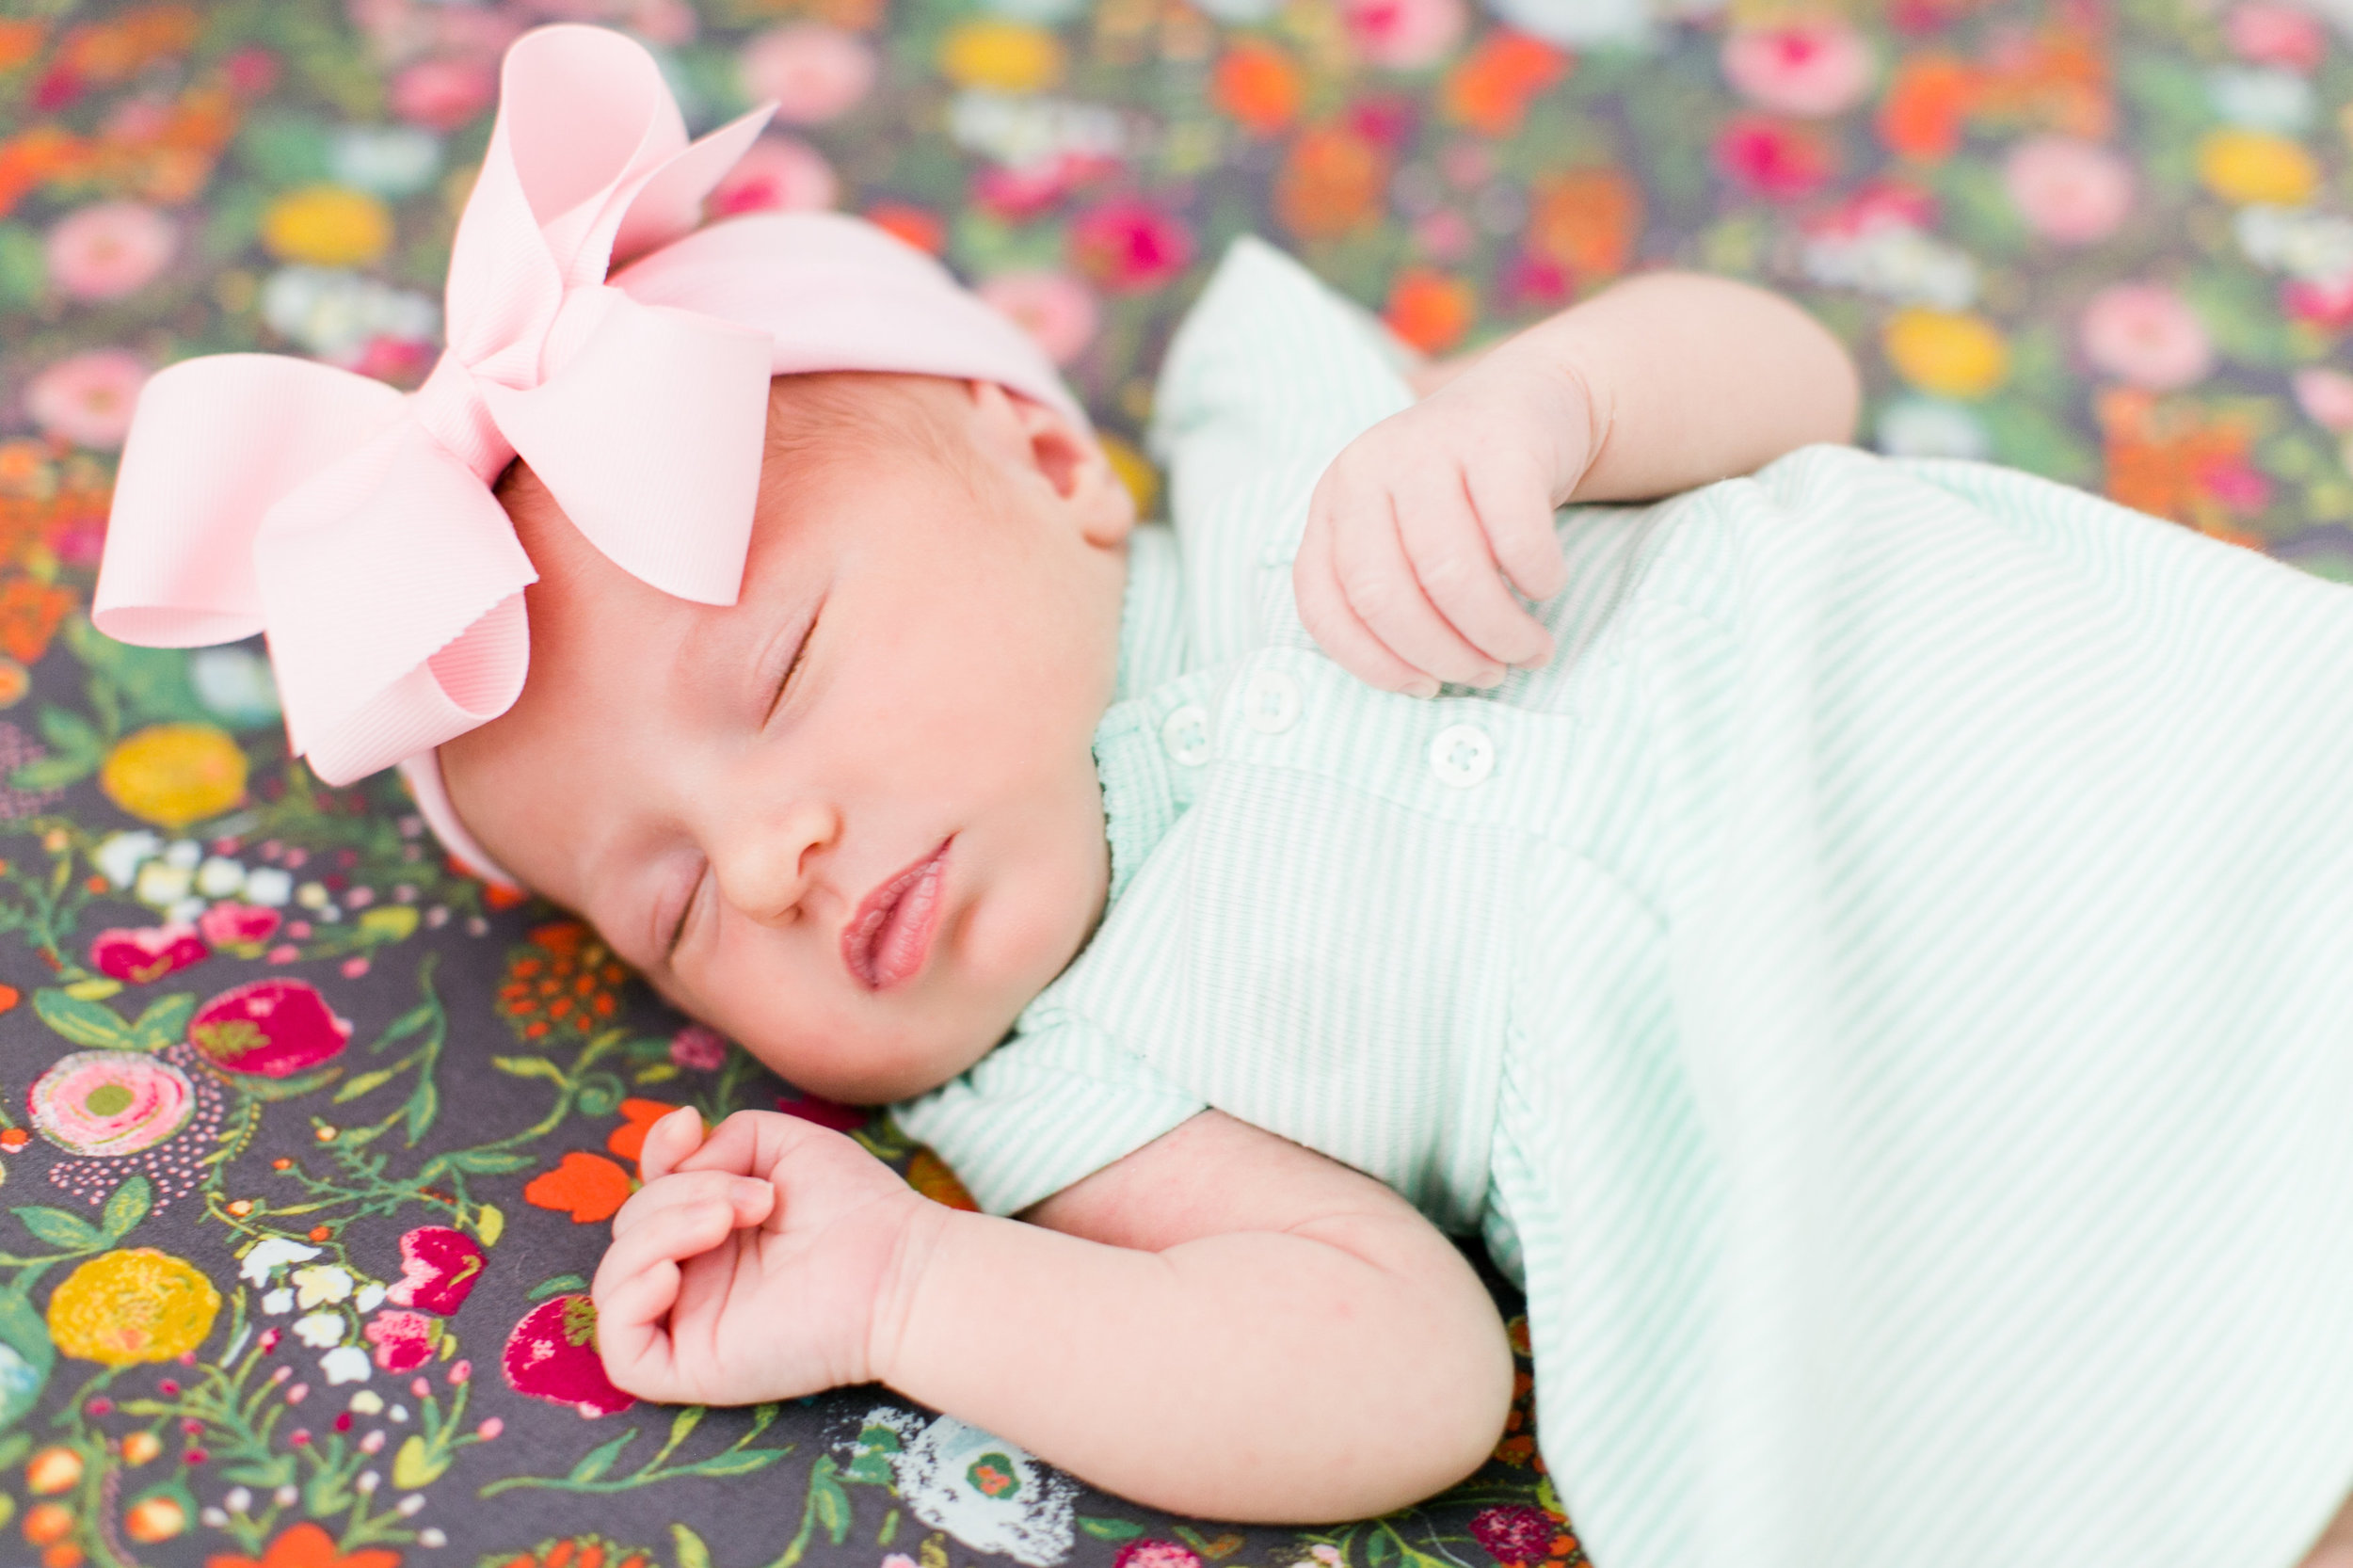 Pretty newborn photos